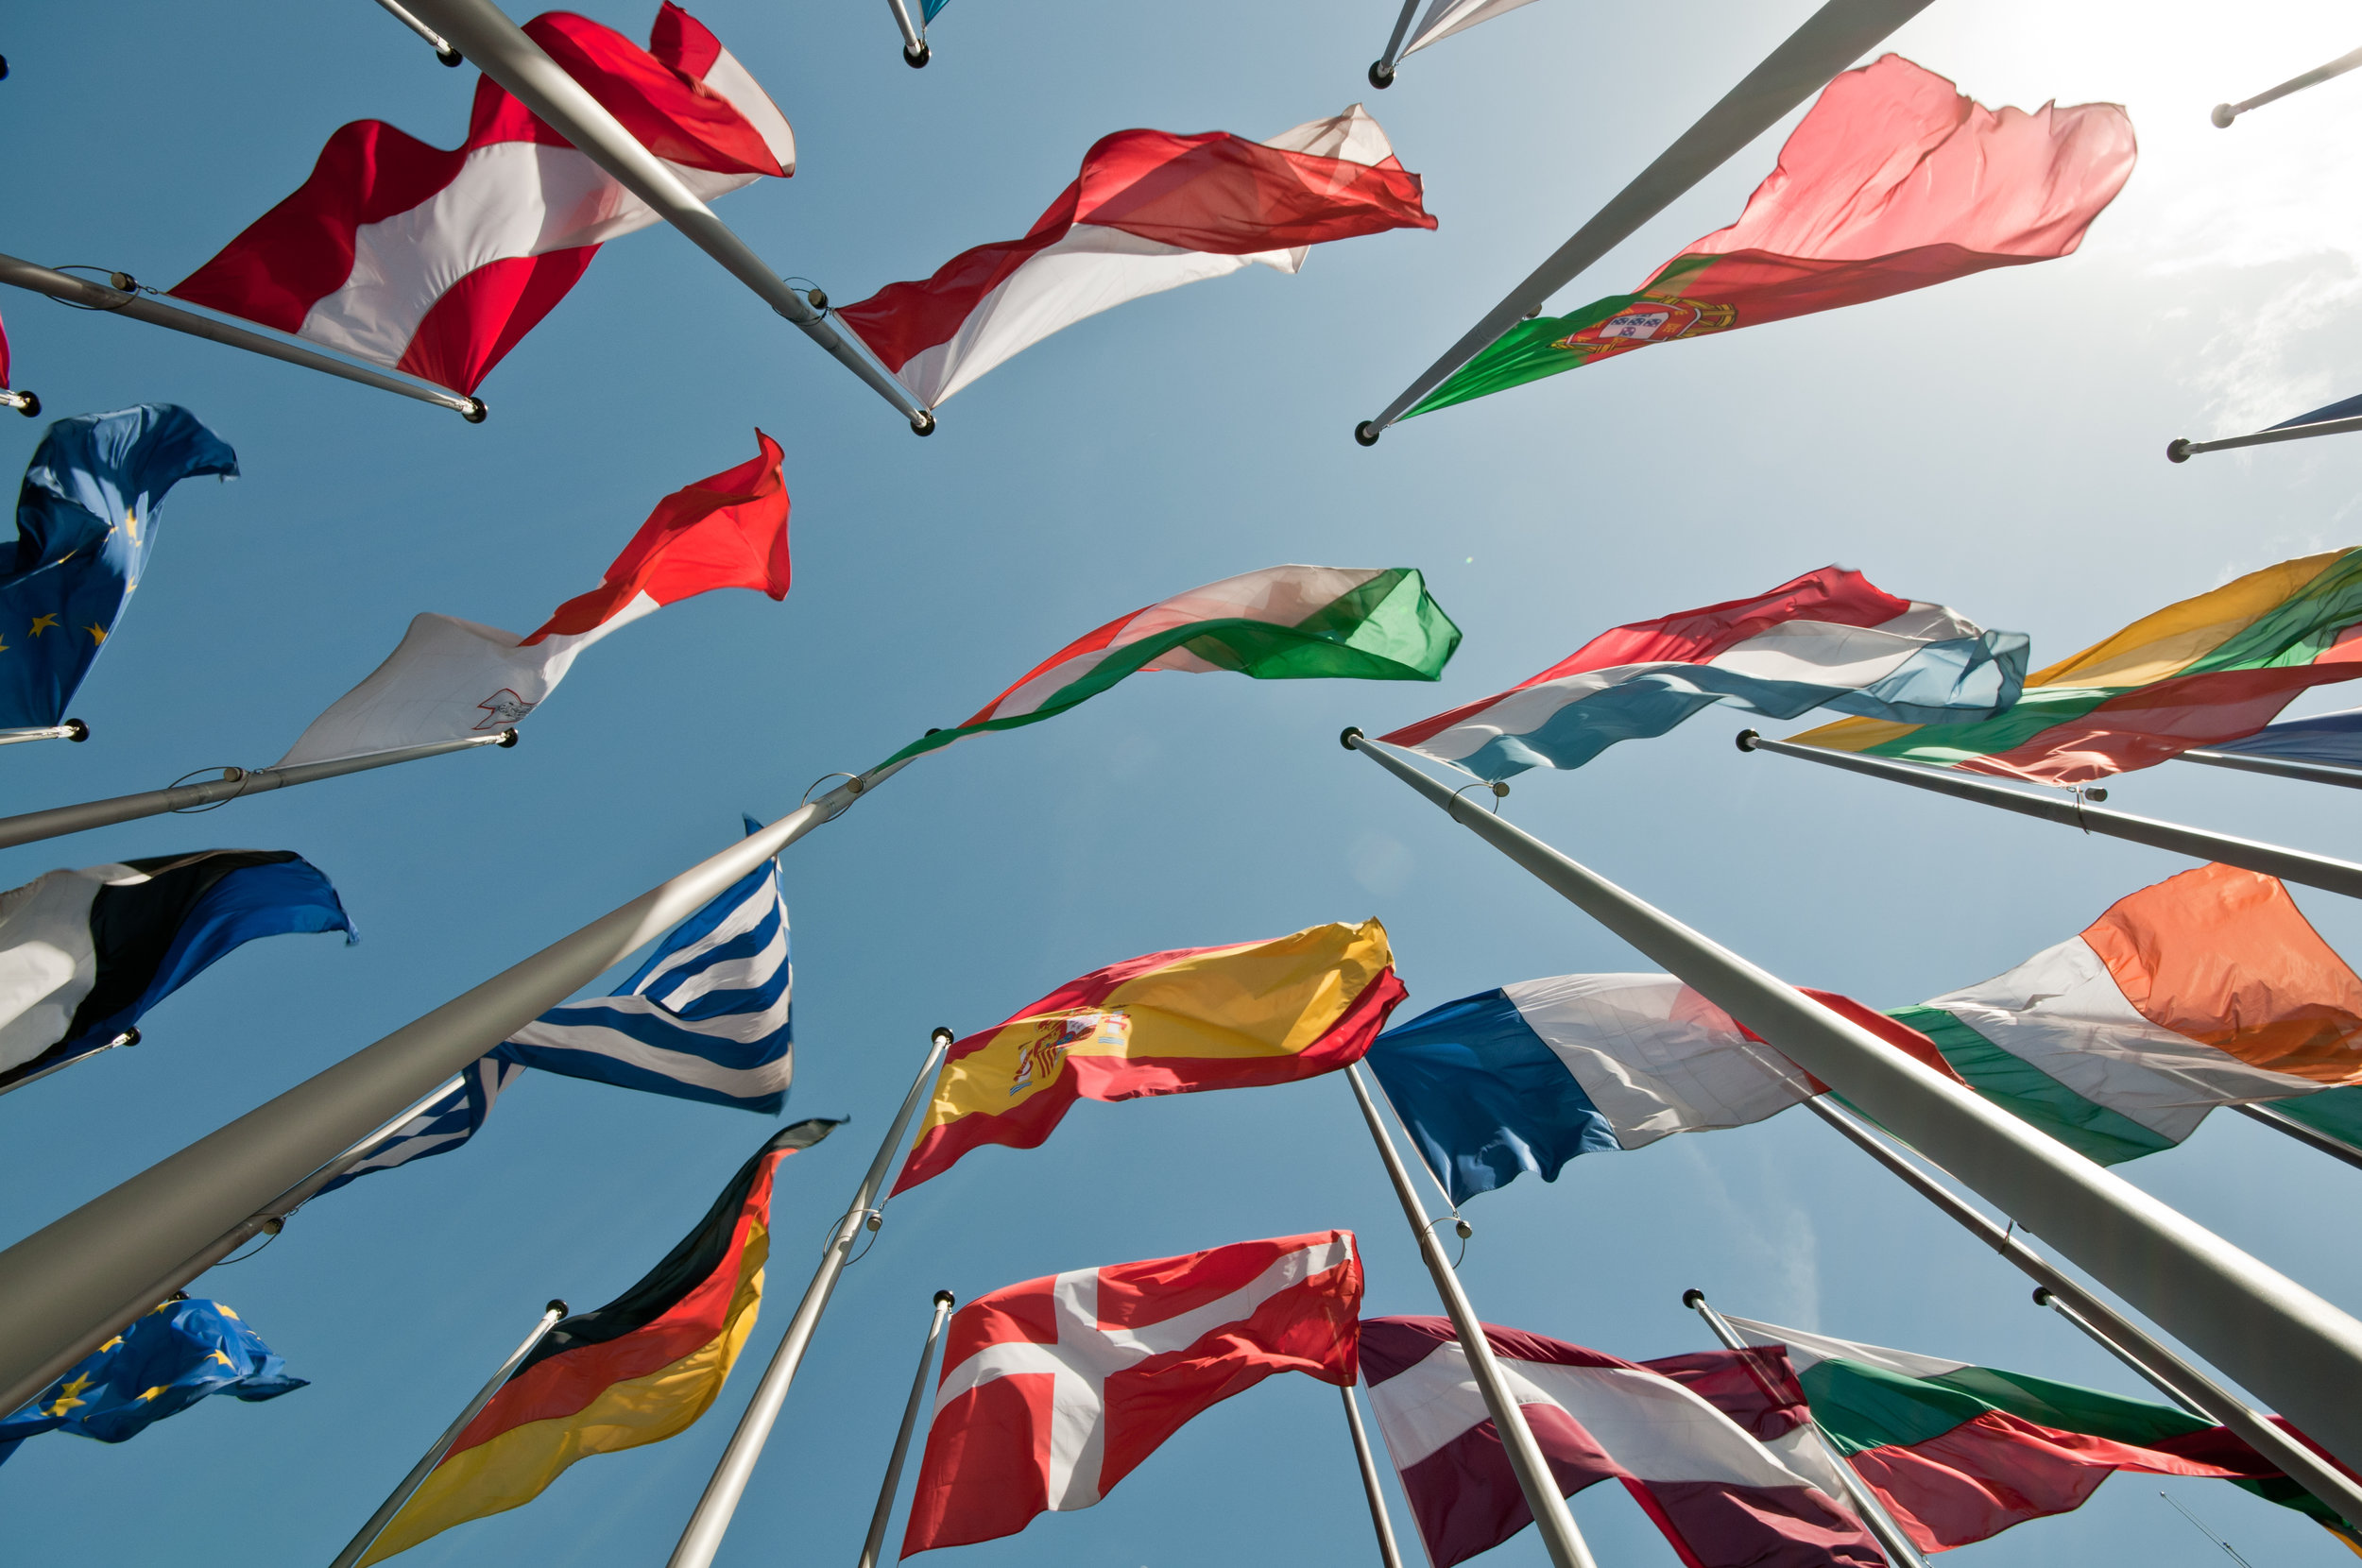 "POSITIVE EU DECISIONS GIVE CAUSE FOR OPTIMISM      There have now been no fewer than five European Commission decisions, over the past five years, which have given the green light to member states wishing to introduce state aid in favour of their horseracing industries and which should be of great interest and encouragement to a number other European racing industries. If lessons can be learnt from these cases, this may help the racing industries in other European countries construct the arguments necessary to follow suit, thereby improving the financial health of our sport across the region.    Racing authorities the world over are engaged in conversations with their governments, seeking to establish, protect, or maximise statutory funding for horse racing as well as to safeguard the future health and stability of the industry and that of the breed. Normally, this funding takes the form of a statutory return to horseracing from betting.    So, typically, the racing authority must first provide good arguments to answer the question of why government should support such a guaranteed return to horseracing from betting (which would normally constitute special treatment for the sport). Then, in many cases, a further question has to be successfully answered: ""Why should Government feel confident that objections on the grounds of state aid will be overcome?""    These five decisions – relating to France and Germany (in 2013) and to the UK, Finland, and Denmark (last year), are examples of racing authorities not only having convinced their governments to provide such assistance, but also of their governments having successfully argued before the European Commission that the measures introduced constituted 'compatible' (ie admissible) forms of state aid. These decisions should be of interest to those racing industries that either:    have no current statutory support, but where their government either allows, or is contemplating allowing, betting operators independent of the sport to take bets on their racing, or    have statutory support, but where the level of that support can be demonstrated to be insufficient to sustain the country's racing industry, and/or the terms of that support can be shown to be in some way unfair.    The causal factors behind the measures being introduced varied substantially between the five countries, as indeed did their context, in terms of each country's betting and racing 'landscape.' In three countries – France, Germany, and Denmark – the catalyst was a liberalisation of betting to end a previously existing monopoly. Of these, in the cases of France and Germany, the trigger for this liberalisation had been an adverse view taken by the European Commission of the restriction on trade that the monopolies had created; in Denmark, the move was voluntary and sought to revitalise betting interest in horse racing. By contrast, in Finland the pre-existing monopoly was retained – but the scope of betting activity within that monopoly was widened. And, by contrast again, in Britain there already existed a highly liberalised gambling regime – it was the circumvention of the rules by betting operators that provided the impetus for change.    The level of support approved has varied somewhat. In the pioneering French case, a levy of 5.6% of stakes was applied to online bets on domestic horse racing, divided up pro-rata between the three codes – Flat, Jumps, and Trotting. In Germany a tax was placed on domestic and foreign betting operators (fixed odds and Tote) of 5% of stakes on German horse racing (Flat, Jumps, and Trotting). In Great Britain, a levy of 10%, not of stakes but of 'Gross Gambling Yield' – ie the difference between stakes placed and winnings returned to punters, above a de minimis threshold of £500,000 per annum – was applied to all bets placed, whether in Britain or elsewhere, on British horseracing (Flat and Jumps). In Finland, an allocation of 4% of the proceeds of a newly formed state monopoly (which covers all forms of legal gambling – lotteries, pools, betting games, slot machines, casino games, and totalisator bets) was directed to horse breeding and equestrian sports (of which the horseracing element only comprised trotting, since there is no gallop racing in Finland). And in Denmark what has been introduced with effect from January 1st of this year is an 8% levy on all betting companies' turnover from betting on Danish horse racing. All Danish racecourses (the only gallop track being Klampenborg) benefit. This is to replace, in a phased manner over five years, the current 21.25% cut of on-course turnover which each course has been receiving.    Without exception, all five arrangements were deemed to constitute 'State aid.' The definition of state aid that was applied can be found in Article 107(1) of the Treaty on the Functioning of the European Union (TFEU). This states that ""any aid granted by a Member State or through State resources in any form whatsoever which distorts or threatens to distort competition by favouring certain undertakings or the production of certain goods shall, in so far as it affects trade between Member States, be incompatible with the internal market.""    None of the five governments contested the fact that the measures they were proposing indeed constituted state aid. Why, then, did the commission approve them? For the answer, in all five cases, we must look first to the pioneering French case, which has profoundly influenced all those that have followed.    As Christian Maigret, the finance director of France Galop, recalls, it was a protracted process: ""In fact, the parafiscal levy on online horse racing betting took a very long time to be instigated because of the discussions between the French government and the EC on the legal nature of this tax and on the financial statements to justify the tax.""    The first attempt – which pinned hopes on it being exempted from state aid restrictions on the grounds that it constituted 'public service compensation – was rebuffed by the commission, and the French authorities were required to re-think and re-submit their application on different grounds.    Two years later the French government instead proposed their levy as ""aid to an economic sector, namely the horse racing and equine industry, based on the common interest that the PMU and competing online horse-race betting operators have in organising horse races on which bets are placed.""    By doing this, they were effectively pinning their hopes now on the applicability of Article 107 (3) (c), which effectively exempts ""aid to facilitate the development of certain economic activities or of certain economic areas, where such aid does not adversely affect trading conditions to an extent contrary to the common interest."" It is a reliance on this exemption that all four of the other countries have subsequently taken.    To qualify under this get-out clause, ""an aid measure must pursue an objective of common interest in a necessary and proportionate way."" Testing for this involves balancing the ""positive impact of the measure….against its potentially negative side effects, such as effect on trade and distortion of competition."" First, it should be demonstrated that the measure aims at a ""well-defined objective of common interest."" Second, that is it well designed to do so and, significantly, ""that the same change in behaviour could not have been achieved with less aid."" Finally, the distortions on competition and the effect on trade are quantified, in order to assess whether the overall balance is positive.    The commission considered that the French levy had four common interest objectives – making equitable, as between betting operators, the burden of funding horse races; contributing (through the liberalisation of online gambling) to the emergence of (a) a legal framework and (b) legal structures for online gambling, thereby increasing legal certainty and clarity for all those involved and, finally, ""promoting the rational development of equidae production and breeding.""    It found the scheme to be appropriate, in that it ""prevented the PMUs competitors from obtaining a share of the online betting market without contributing to the costs of organising horse races.""    It further found the amended scheme to be 'proportionate' and compliant with the principles both of freedom to provide services and of non-discrimination. This followed a number of important concessions that had been made since the initial application. For example, the costs to be recovered by the levy (i) only now included 'premium races' – ie those on which anyone could bet, whether in France or abroad, as opposed to those on which there was only on-course betting – and (ii) excluded the breeders' premiums which are only paid to breeders of French-bred horses. As a result of the re-calculation, the rate of levy had reduced from the original 8% to 5.6%. A number of checks and balances had been volunteered also, to prevent the chance of the agreed 'common interest costs' being exceeded.    The commission authorised France's parafiscal levy on 19th June, 2013.    Subsequent commission decisions have confirmed its conclusion that the support of horseracing is a worthy aim and, properly constructed, will be deemed by the commission an ""objective of common interest."" It is worth contemplating precisely why EU decision makers should consider that racing is worthy of such treatment.    There are a couple of golden nuggets, within EU legislation, which have been of crucial assistance to racing's cause. Hidden deep in the sands of EU publications they may be – but nuggets they certainly are.    The first can be found in Council Directive 90/428/EEC within which there are two crucial paragraphs:    Whereas in order to ensure the rational development of equidae production, thereby increasing productivity in the sector, rules governing intra-Community trade in equidae intended for competitions must be laid down at Community level;    and    Whereas trade in equidae intended for competitions and participation in such competitions may be jeopardized by disparities existing in the rules concerning the allocation of a percentage of the prize money or profits for the safeguard, development and improvement of breeding in the Member States; whereas introducing free access to the competitions presupposes harmonization of these rules;    The French authorities drew from these two statements the following conclusion:    The Directive on trade in equidae intended for competitions…recognised the interest in 'ensur(ing) the rational development of equidae production' and encouraging 'the safeguard, development and improvement of the breed.'    The commission clearly agreed with this interpretation, and the above passage of text has provided the bedrock for all five of the decisions – in each of which the self-same wording can be found somewhere in the text! Thus, the snowball effect of precedent in EU law is evident.    The Finnish decision is perhaps the most helpful of all to racing authorities in this regard, in that this aim of the 'rational development of equidae production' was their sole objective cited – and proved sufficient, in and of itself, to be considered of common interest.    The second helpful reference can be found in the European Commission 2011 green paper on online gambling in the internal market, which says that    a specificity of horse racing compared to other sports is that its primary attraction is for gamblers. Thus, to a greater degree than other sports events, its viability will depend on sufficient proportions of gambling revenues being reinvested into the activity.    Again, this quotation was cited in the French decision and has been called upon in subsequent cases. The inability of horseracing to fund itself without a return from betting was noted by both the German and Finnish governments.    But these observations could be said to beg the questions of whether or not horse racing is (a) a worthy recipient of financial support and (b) dependent upon income from betting, why should the betting industry be required to provide such support? In brief, the commission has accepted the fact that there exists a symbiosis between racing and betting, stating in its German decision: ""both bookmakers and betting platforms benefit equally from the organisation of horse races by offering betting products based on the results of horse races. They felt the Danish measures appropriate, in part because they would ensure 'a fair distribution of the financial burden (of organising horse races) between the betting and the racing industry.""    So the above two quotations in bold type, derived from EU documents, can be seen as the foundation blocks upon which a racing authority may build its case for support, whatever the specifics of its proposed funding arrangements.    Another staple observation made by the commission when arriving at its verdicts has been that ""the Commission has consistently declared compatible with the internal market tax measures applied to enterprises of a certain sector that aim at financing collective activities that would benefit the entire sector."" Although not confined in its scope to horseracing, this is another point that racing authorities would be well-advised to include in any case they construct.    While the argument about the importance of horse racing has seemingly been won, it can do no harm to underline the main reason why the development of the equine sector – as opposed to, say, the development of the gastropod sector through competitive snail racing – is considered worthy and important.    The French authorities noted the scale and geographical spread of the industry, which was said to employ 74,000 people, ""present in every region of the country."" Finland claimed that the equine industry ""employs some 15,000 persons full-time and part-time"" and ""plays an important role in the development of agriculture and other rural livelihoods, besides being important for the vitality of rural areas."" Horseracing is one of the most labour-intensive and job-creating of the equine pursuits. Further helpful data, for example from economic impact studies in Britain and Ireland, can be found on the new Global Reference Library feature on the International Federation of Horseracing Authority (IFHA) website at    http://www.horseracingintfed.com/Default.asp?section=Resources&area=12   .    It is important that the measures proposed can be shown to be 'fair.' For example, the German decision talked of ensuring ""an equal distribution of the financial burden between all horserace betting operators"" and ""the creation of a level playing field."" And, if their effect is to liberalise the betting market and enhance competition, so much the better, since this is consistent with the principle of freedom to provide services.    There are limits, however, to the amount of support that will be considered acceptable. In the British decision, for example, the commission states: ""The amount of the aid must be limited to the minimum needed for the common interest objectives to be met.""    It then becomes incumbent upon the applicant to show that the funds raised will not exceed the costs – or that, should they do so, there are mechanisms by which the surplus can be repaid. Defining the ""costs for the organisation of horse races"" then becomes a critical task. What is allowable and what is not?    The organising of races, drawing up and enforcing the rules, anti-doping and anti-match fixing measures, arranging the necessary facilities by maintaining and building racecourses, selecting horses, providing occupational training and social welfare for those in the industry, and equine veterinary science and education are all elements that have been accepted. But other factors, such as capital expenditure on the racecourses and, crucially, prize money, have also been successfully included.    Legitimate aims include the provision of a sufficient number of races and sufficient field sizes to excite the interest of punters. And having healthy levels of prize money has been accepted as a prerequisite to achieve these aims. The commission has stated that ""prize money, integrity and veterinary science and education…are essential for the sustainability of the horse racing industry, notably the number of horses in training, the number of owners, core industry employment and field size.""    In calculating the necessary level of prize money, Britain looked to a 'basket' of competitor national racing industries – those of Ireland, France, and Australia – and calculated their respective average prize money levels per race. This was posited as the 'optimum' figure, and a total required level of prize money then calculated, given Britain's current number of races run. Britain's actual prize money levels were then set against this optimum figure, and the shortfall calculated. This shortfall then became one element – alongside racecourse costs (including finance and capital) and veterinary research/education – within a total figure of required funding for a sustainable racing sector. The commission accepted this as a reasonable calculation.    I would encourage racing authorities to read these judgments in full before, where appropriate, approaching their governments, emboldened by their findings.       SEMINARS ON THE NEW INTERFERENCE RULE – A BIG STEP TOWARDS HARMONISATION    The EMHF is very keen to see a new model rule in the international agreement adopted by all its members. This would mean that trainers, and others, will know that, wherever within our region they may be racing, cases of interference will for the first time be approached on the same basis by the stewards. The model rule reads as follows:    If, in the opinion of the Staging Authority's relevant judicial body, a horse or its rider causes interference and finishes in front of the horse interfered with but irrespective of the incident(s) the sufferer would not have finished ahead of the horse causing the interference, the judge's placings will remain unaltered.      If, in the opinion of the Staging Authority's relevant judicial body, a horse or its rider causes interference and finishes in front of the horse interfered with and if not for the incident(s) the sufferer would have finished ahead of the horse causing the interference, the interferer will be placed immediately behind the sufferer.      Racing Authorities may, within their Rules, provide for the disqualification of a horse from a race in circumstances in which the Staging Authority's relevant judicial body deems that the rider has ridden in a dangerous manner.      As signalled in the last edition, following the IFHA's decision last October to introduce this model rule, two hastily arranged EMHF seminars were delivered on this subject in January by Denis Egan, chief executive of the newly named Irish Horseracing Regulatory Board (IHRB), and senior members of his team. The first, at the IHRB's Curragh headquarters, attracted delegates from Germany, Greece, Czech Republic, Slovakia, and the Netherlands. The second, in Stockholm, was attended by a further 30 or so stewards and others, mainly from Scandinavia.    The seminars were very well-received and no unexpected impediments emerged that would indicate that a united European adoption of the above 'Category 1 approach' could not be a reality by the end of the year.      EMHF MEETINGS    The EMHF holds two regular meetings annually – a general assembly, and a meeting of our executive council. We are looking forward greatly to visiting two new countries on our roster of hosts. Our general assembly will take place at Athens on Sunday, April 22nd following racing at the city's Marcopoulou Racecourse on the day prior. Then, our executive council members will be hosted by the Jockey Club České republiky (Czech Jockey Club) on Sunday, 9th September and will get the chance the previous day to race at Pardubice racecourse, home, of course, to the famed Velka Pardubicka steeplechase.      CALENDAR OF TOP RACES ACROSS OUR REGION    'Equine Tourism' is an established term – indeed, it was the subject of a conference last July at the European Parliament, organised by the MEP Horse Group in conjunction with the European Horse Network. What this term means to most people is travel to different destinations in order to ride horses. But another legitimate form of 'equine tourism' is going racing while on holiday. I believe this is an underdeveloped theme with great potential. Many racing fans would like to take in a race meeting while on vacation, and some would even construct their holiday specifically around a series of race meetings. But accessing the racing programmes of every racecourse in order to construct practicable itineraries takes time and effort. The EMHF website features what we believe to be the only resource showing the location of all racecourses staging thoroughbred racing across our region. (Click on a flag on the home page and it will take you to a map of the country, with the racecourses shown.) This makes for a good starting point for research, but a longer term ambition would be to link this with fixture lists, so as to be able to show where racing is to be staged on any given day.    As a first step, we recently asked our members to submit the 2018 date of the 'top race' of their calendar. (We left it to them to decide how they selected their 'top race.') There is now a new feature on the site 'Top Race Dates' (under the EMHF News Tab); go to    http://www.euromedracing.eu/top-race-dates   , which shows the selected races by country. Below is the same table by date. Perhaps it will inspire you to visit new racing venues, or to encourage your owners    to race horses there."